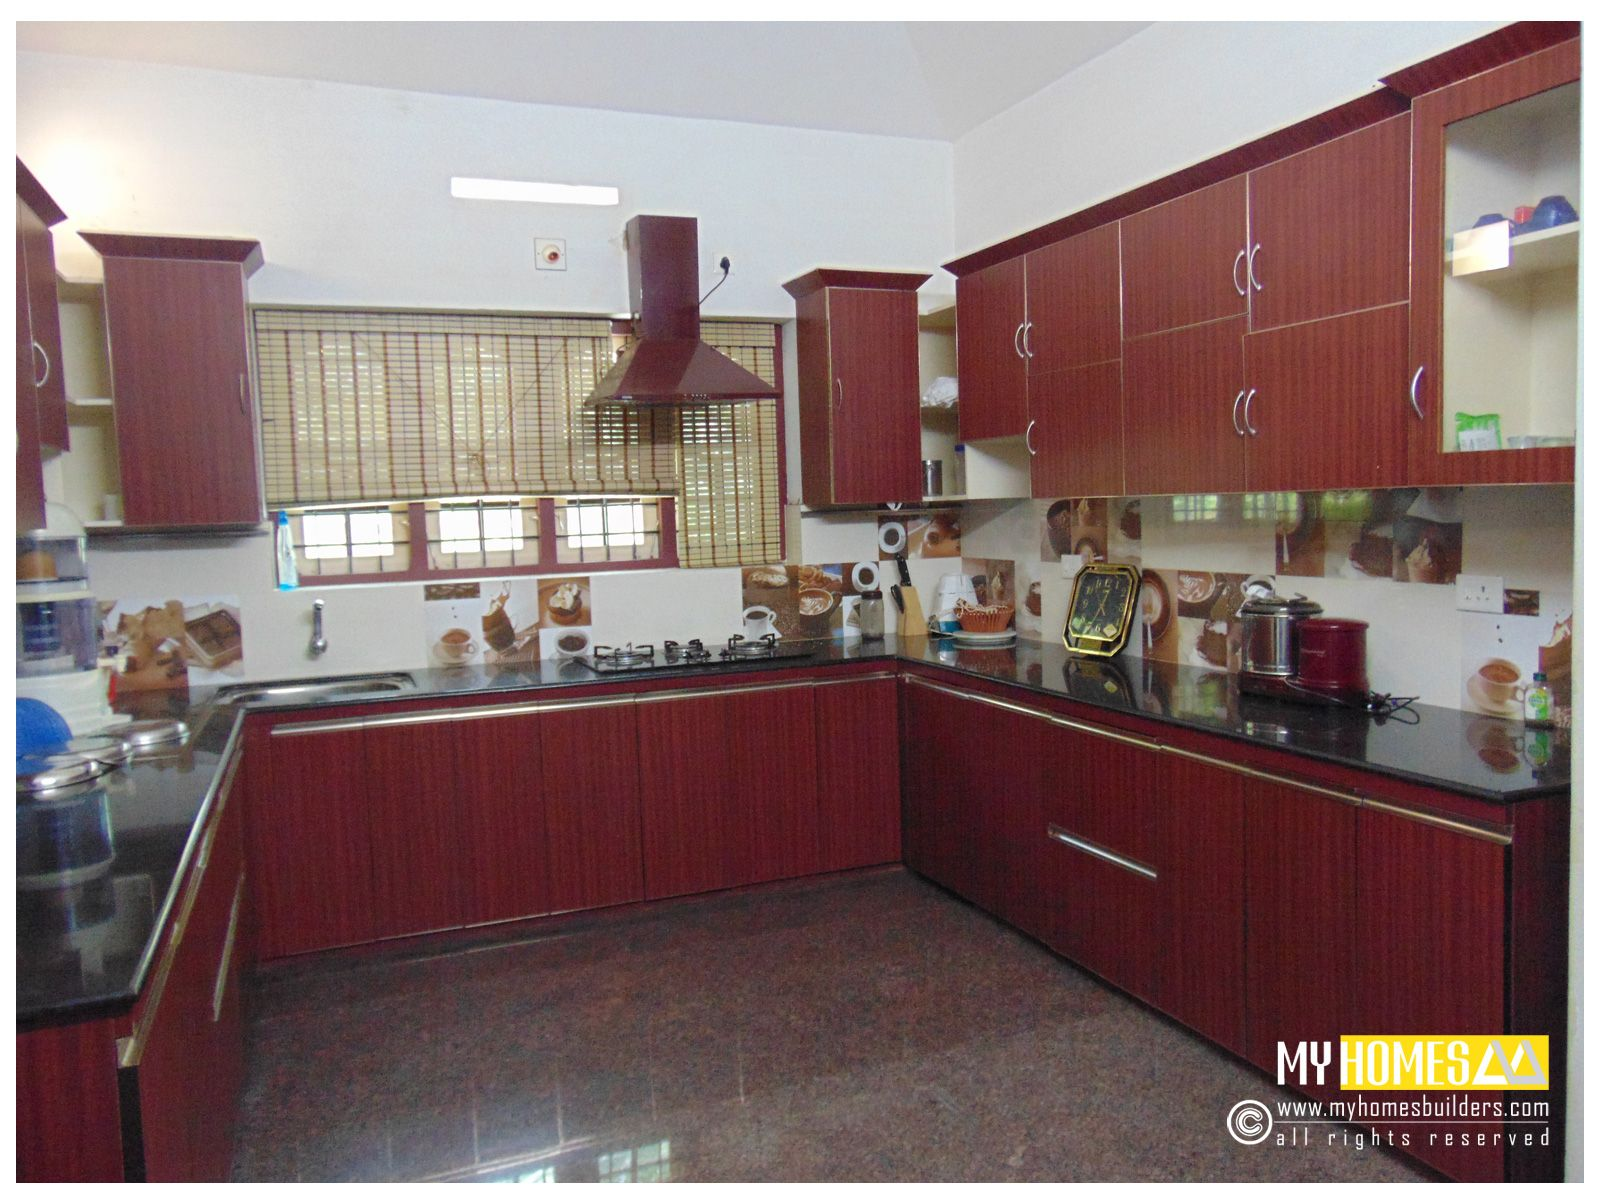 New Model Kitchen Design Kerala conexaowebmix.com ...